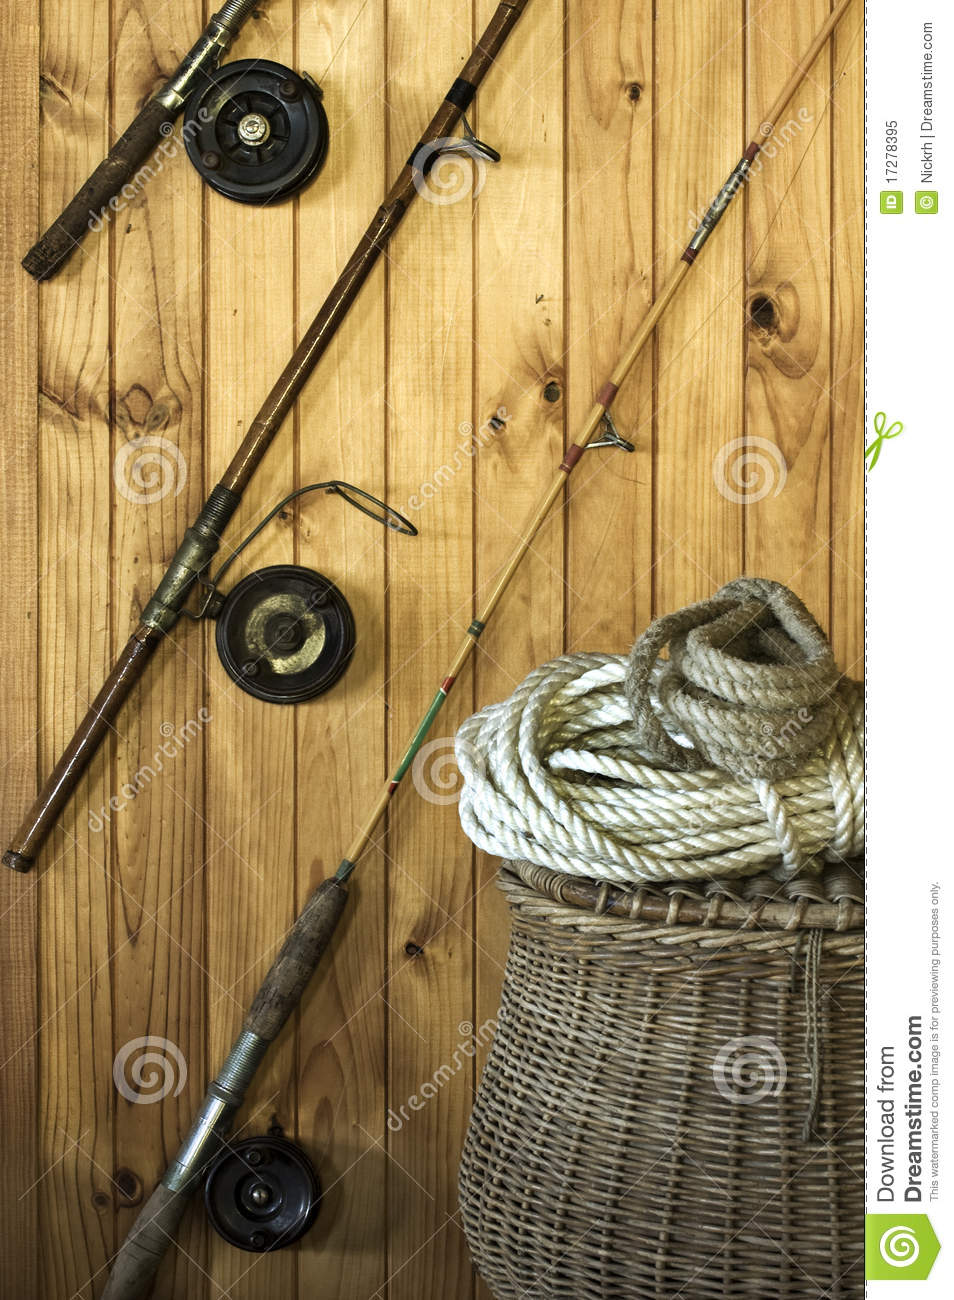 Antique fishing equipment royalty free stock photo image for Wall fishing tools